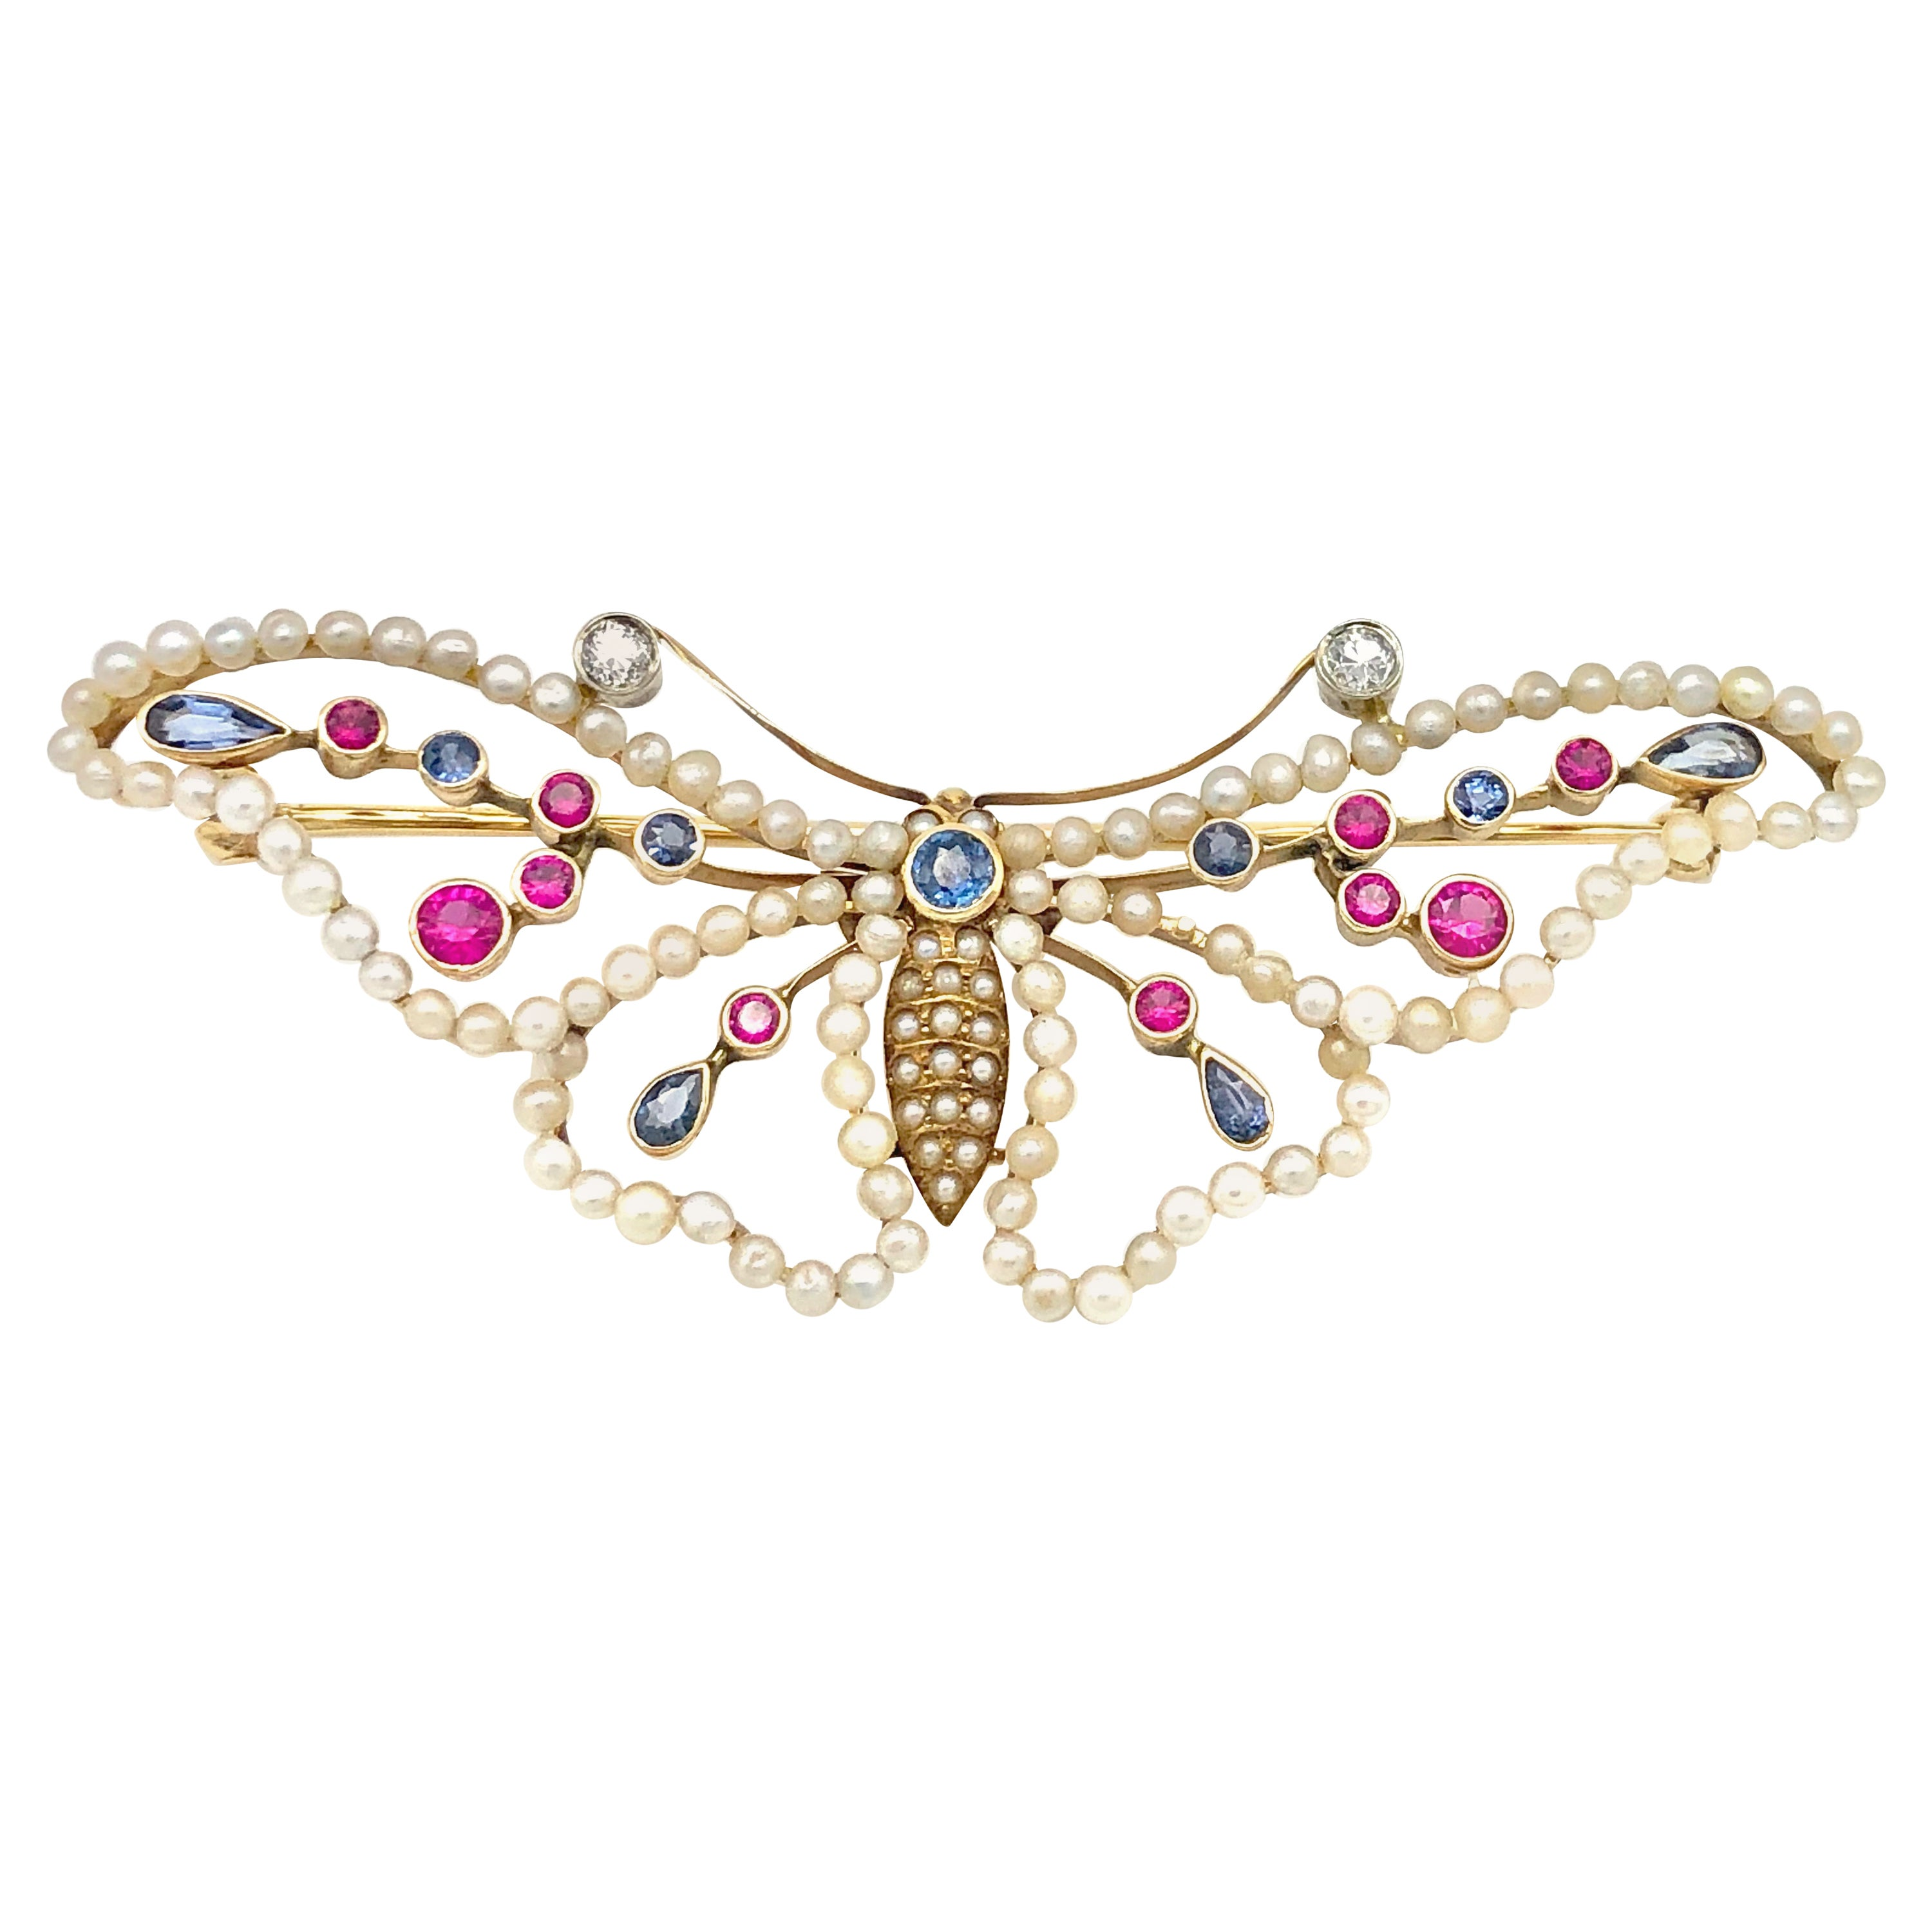 Antique Belle Époque Butterfly Psyche Soul Pearls Sapphires Rubies Gold Brooch